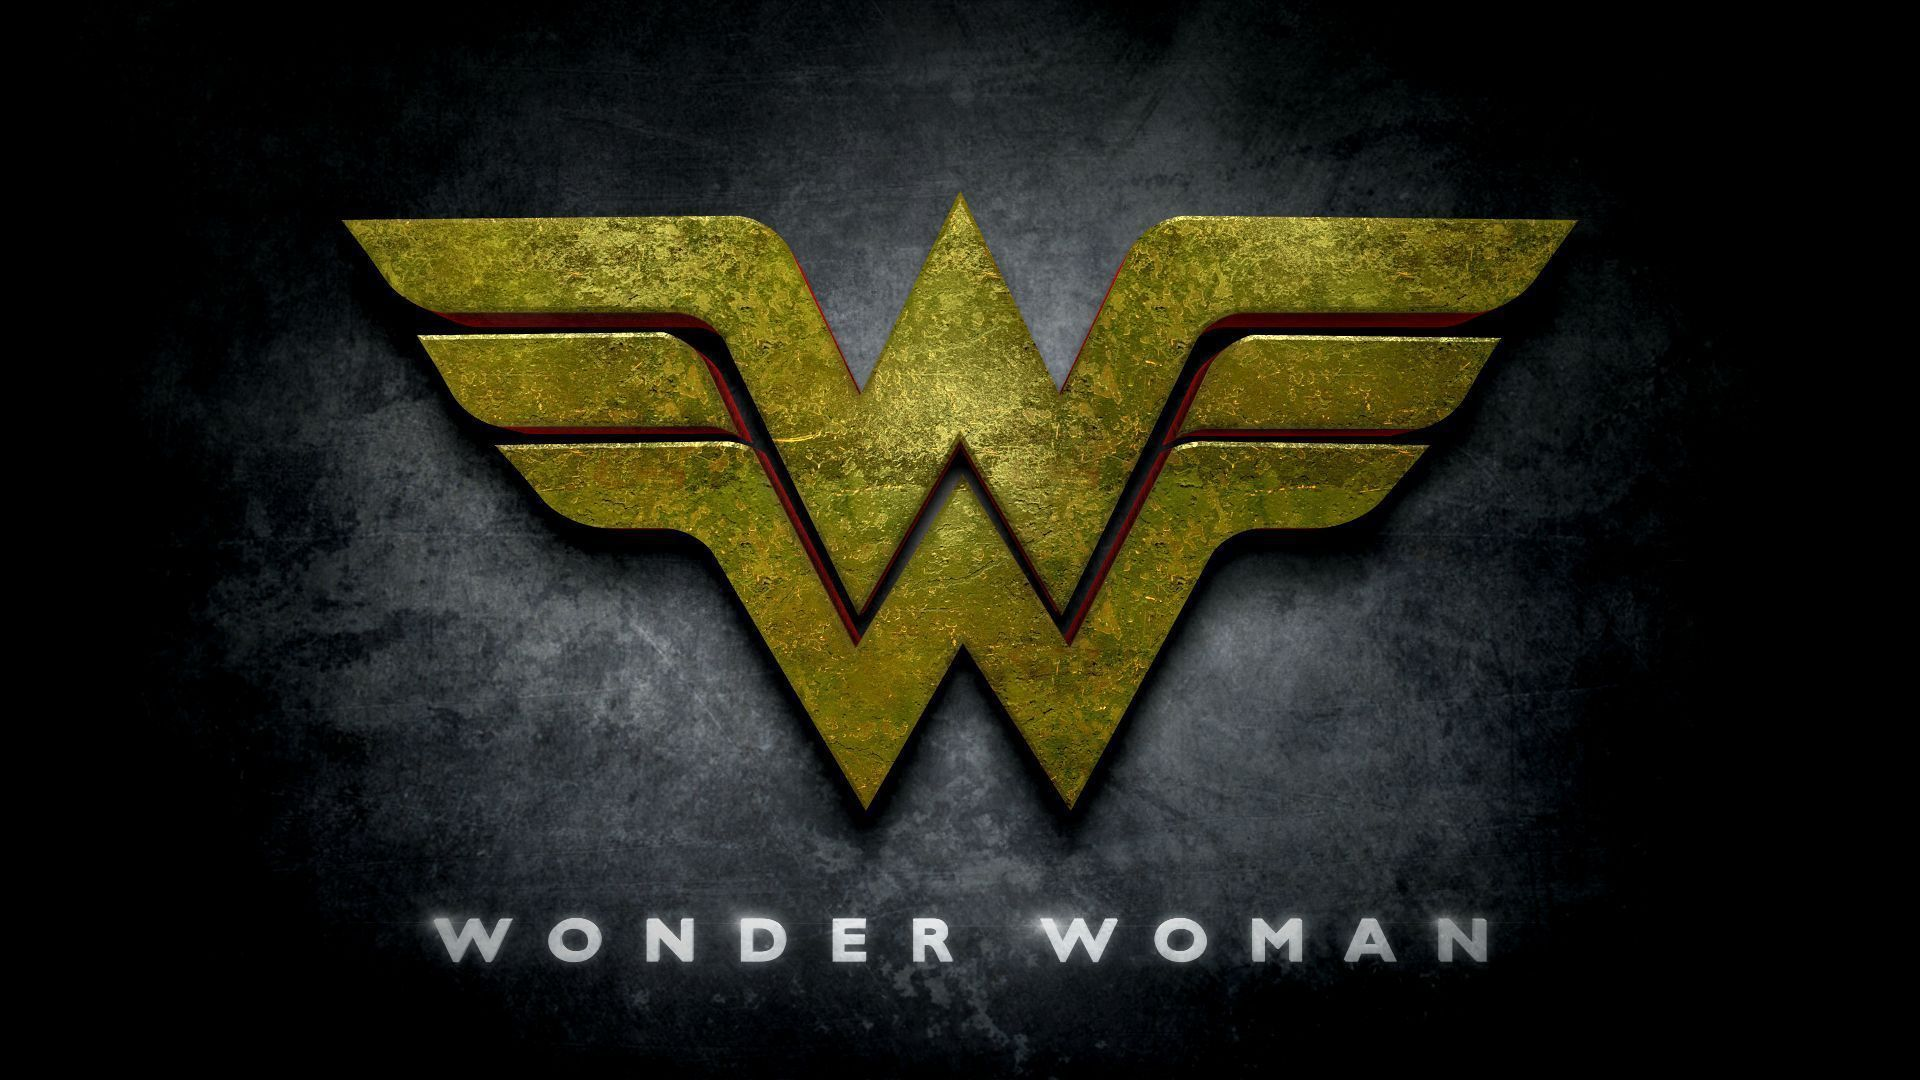 Wonder Woman Background Wallpapers WIN10 THEMES 1920x1080